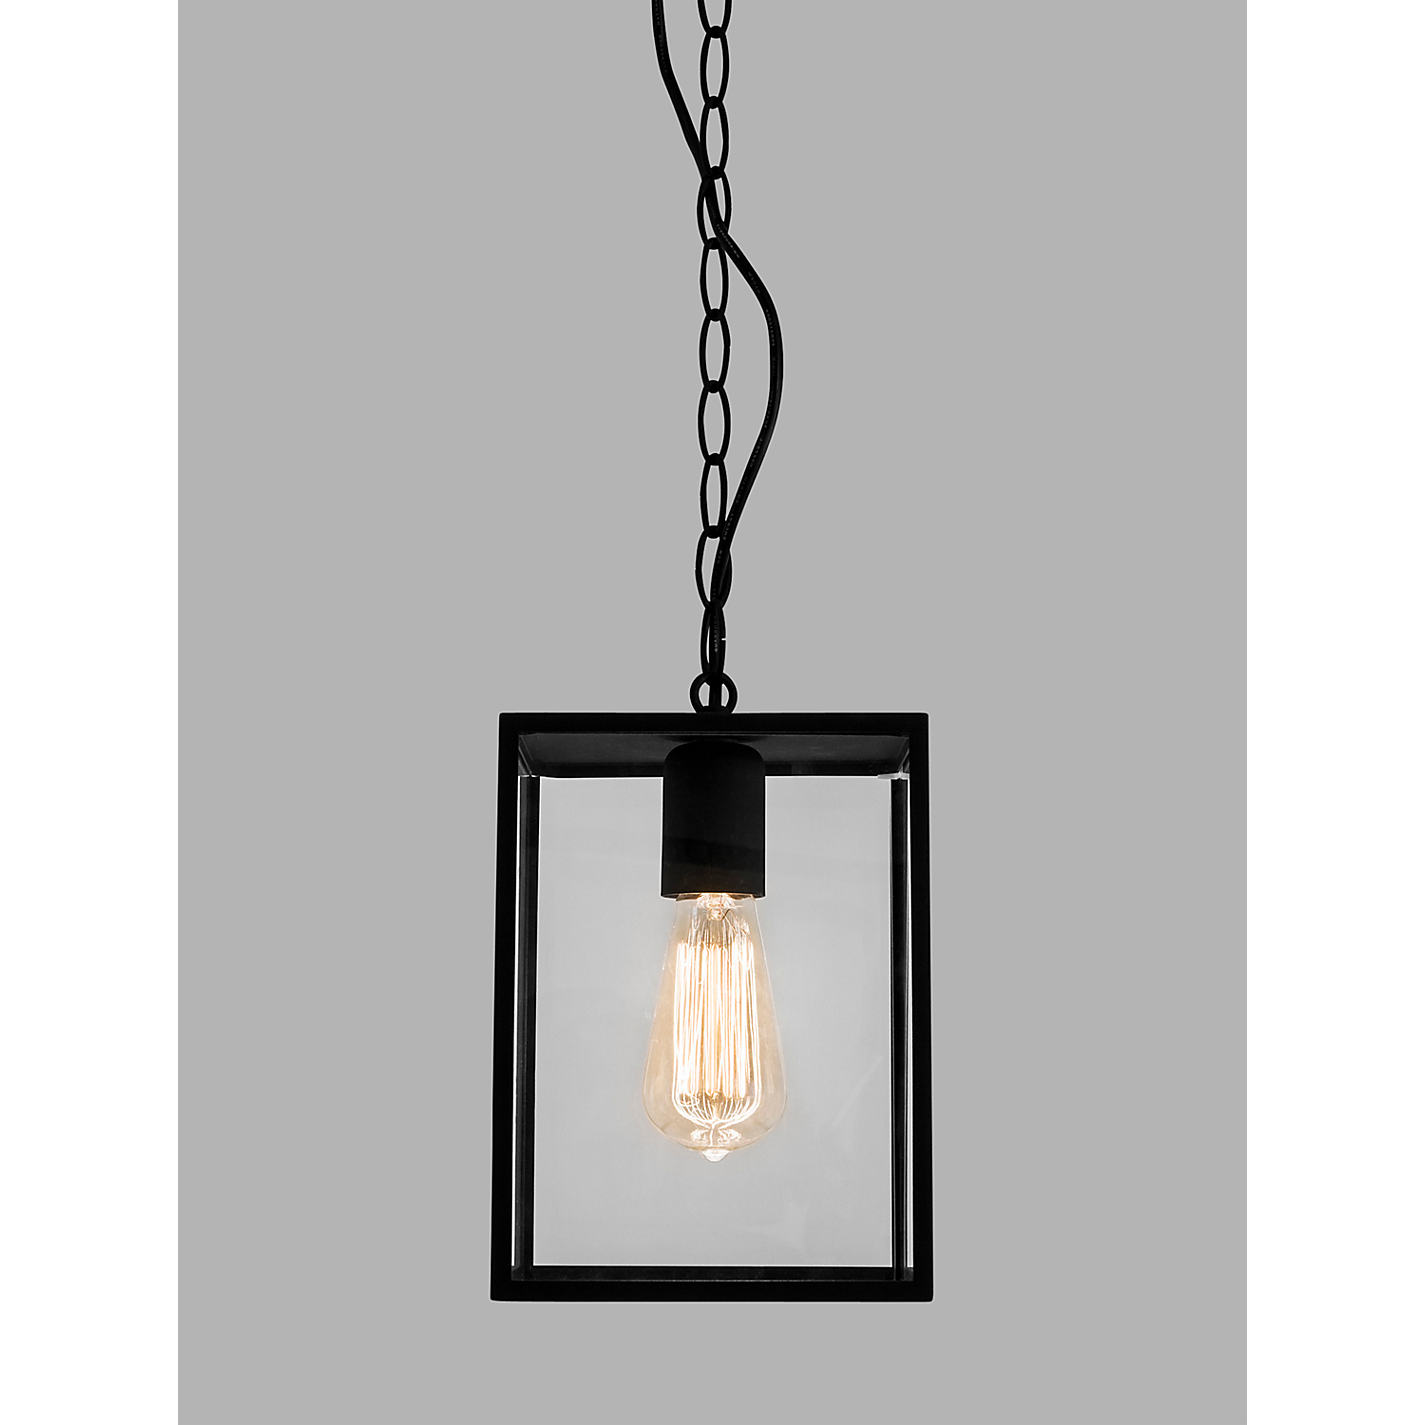 Buy astro homefield outdoor pendant ceiling light black john lewis buy astro homefield outdoor pendant ceiling light black online at johnlewis aloadofball Choice Image